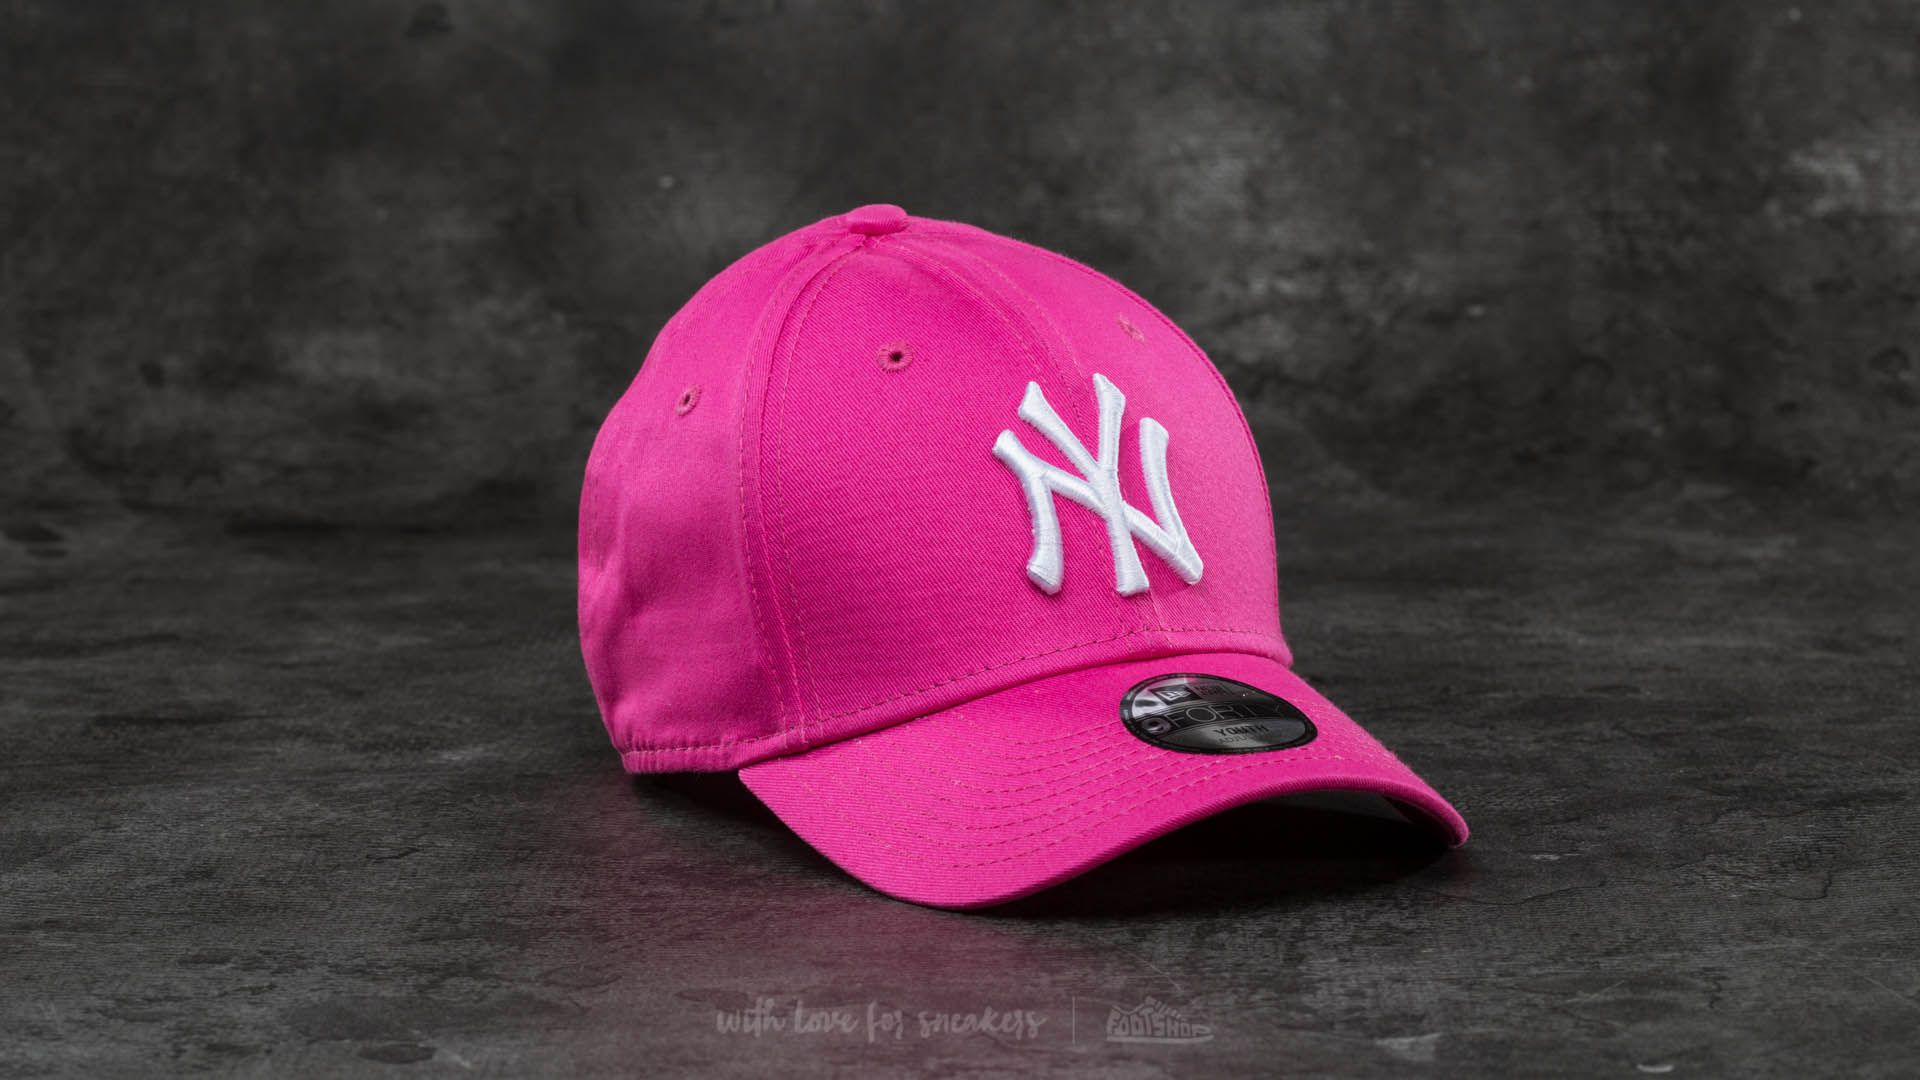 New Era 9Forty Adjustable MLB League New York Yankees Cap Pink  White la un  preț c8dd6f739c